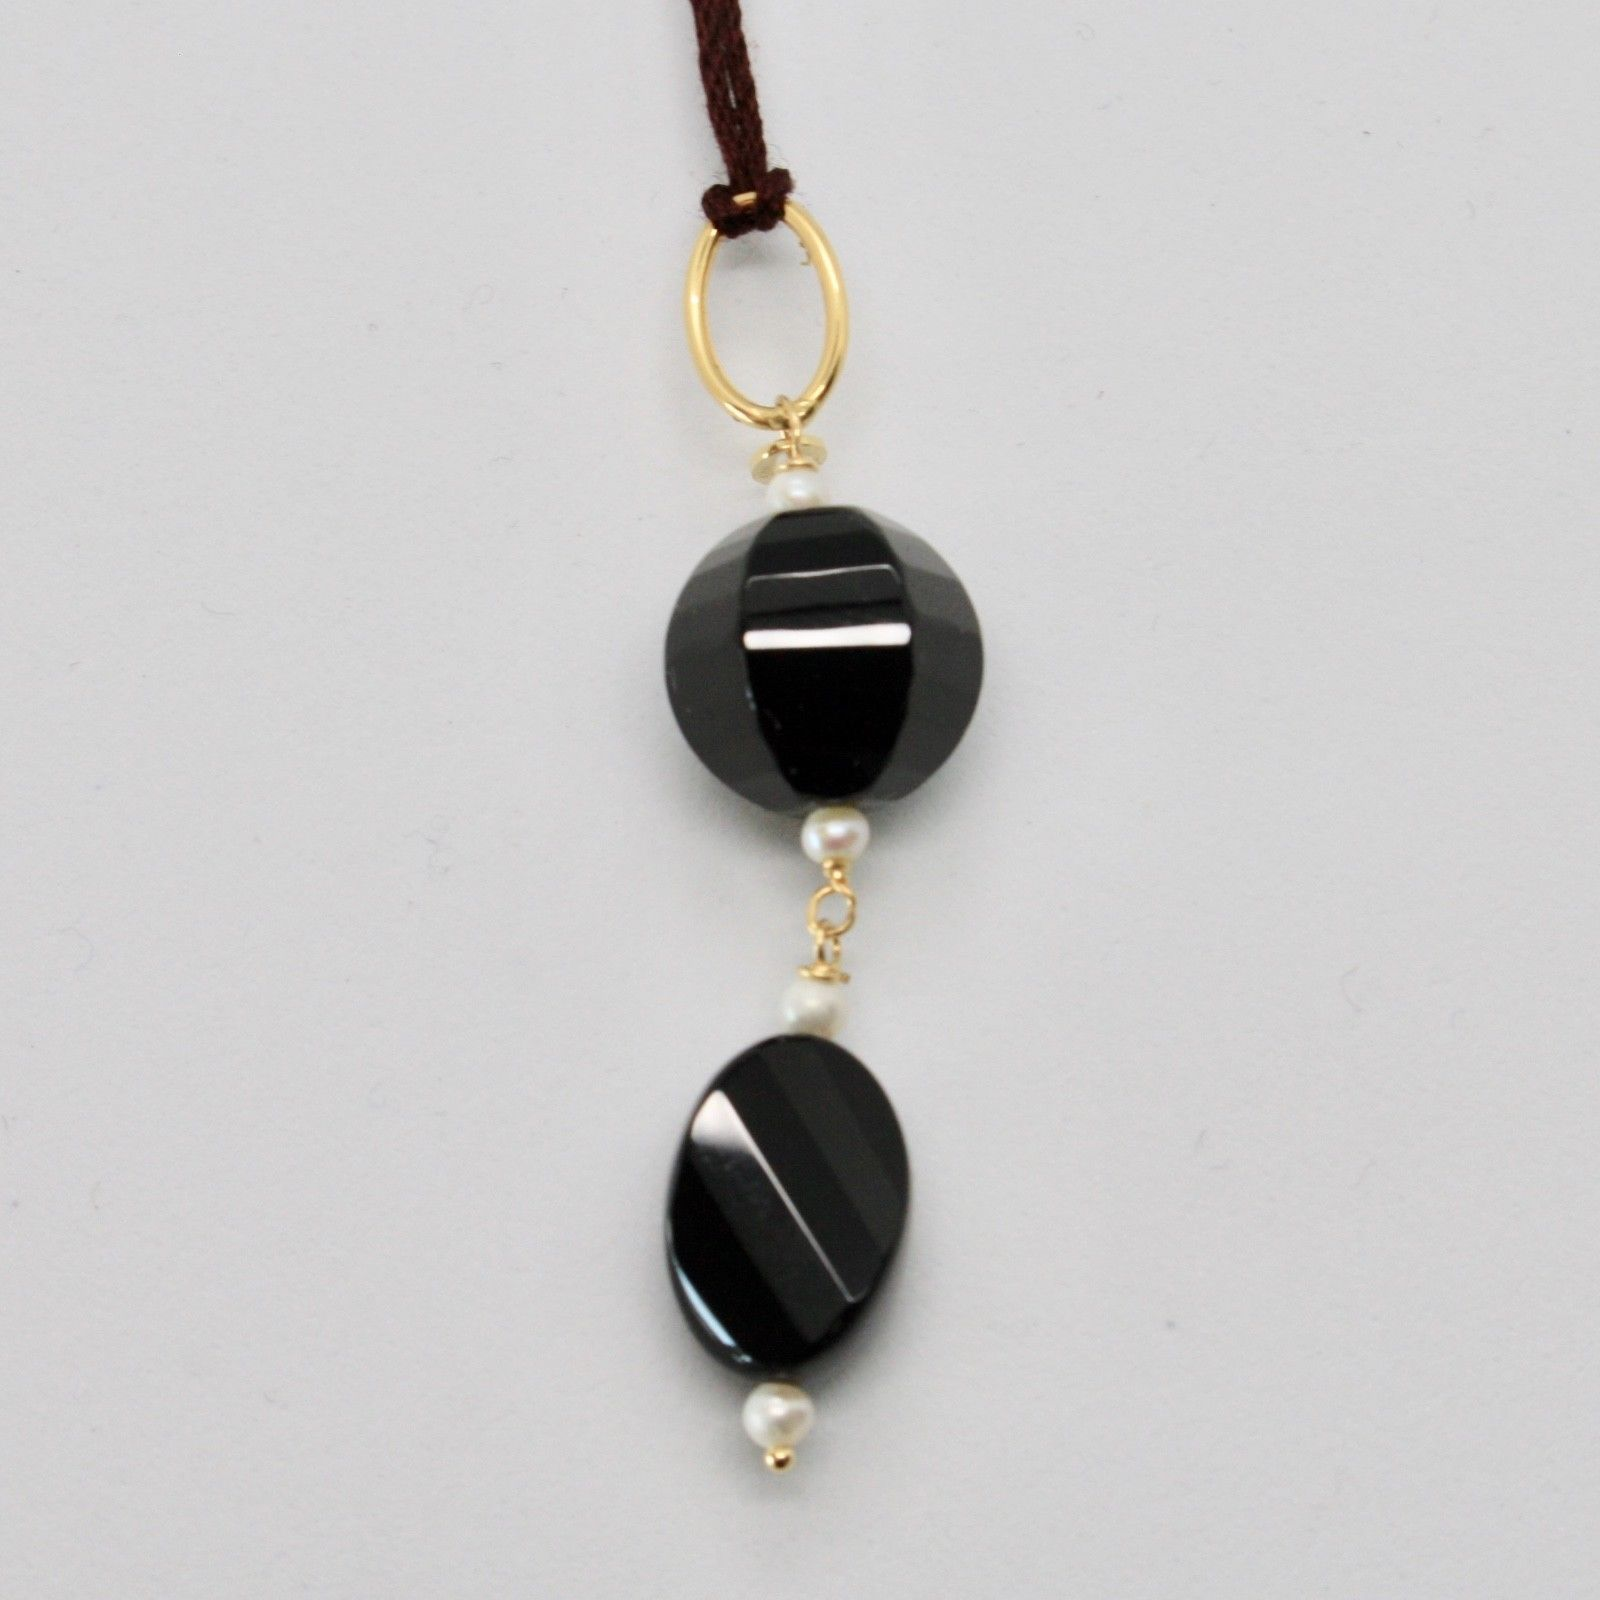 PENDANT YELLOW GOLD 18KT 750 ONYX BLACK NATURAL AND MINI PEARLS OF WATER DOLCE